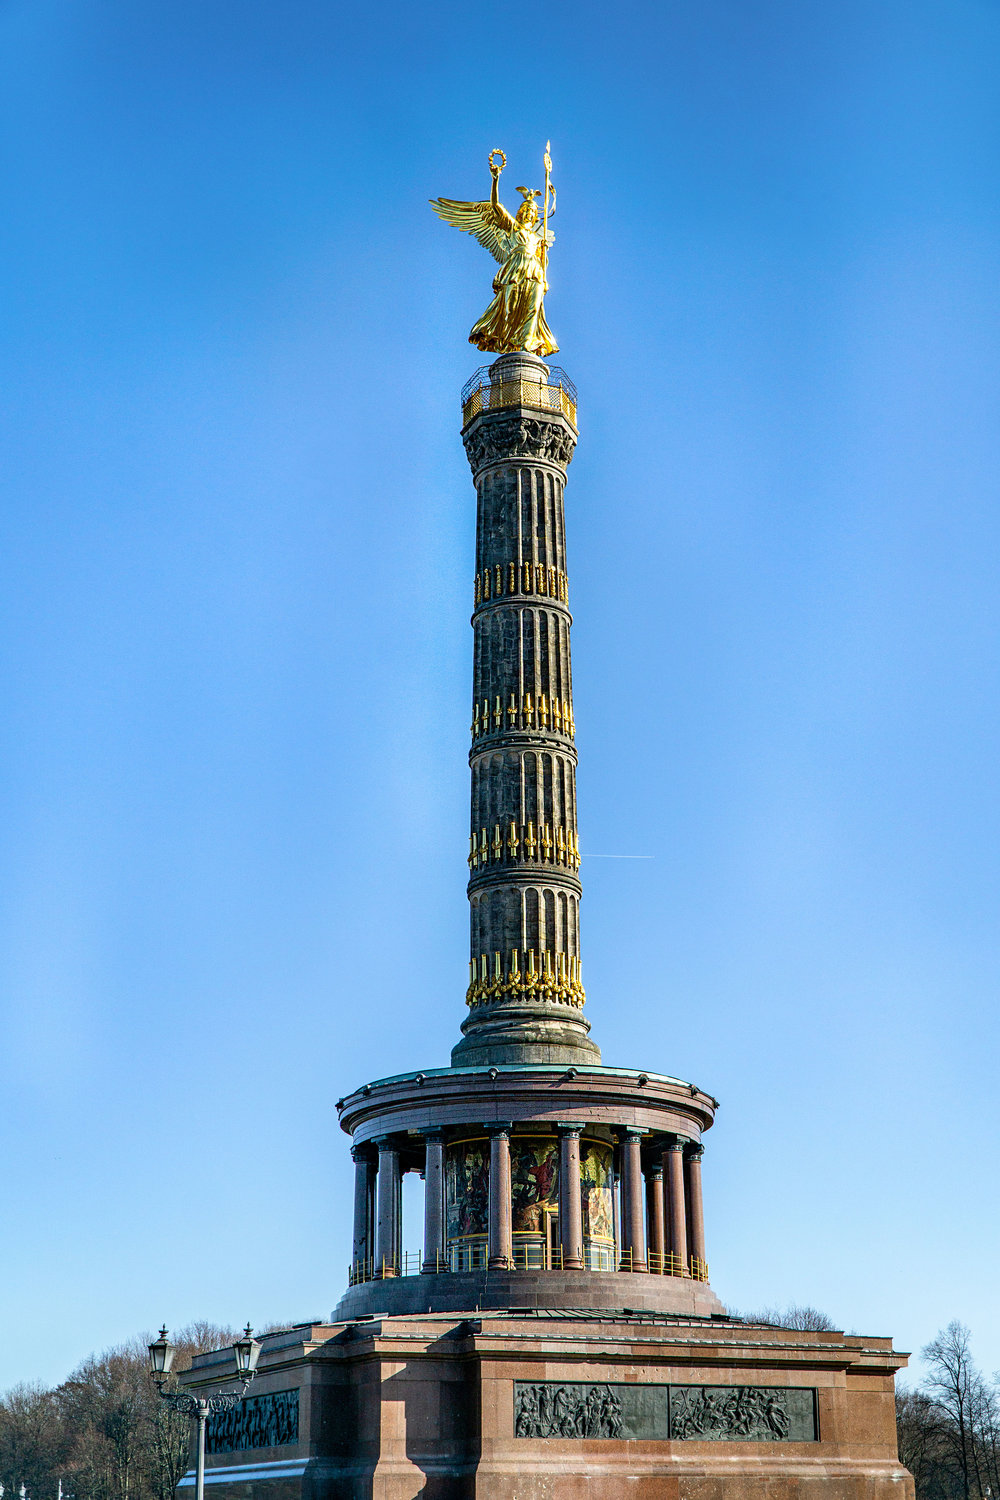 berlin_victory_column_vickygood_travel_photographysm.jpg